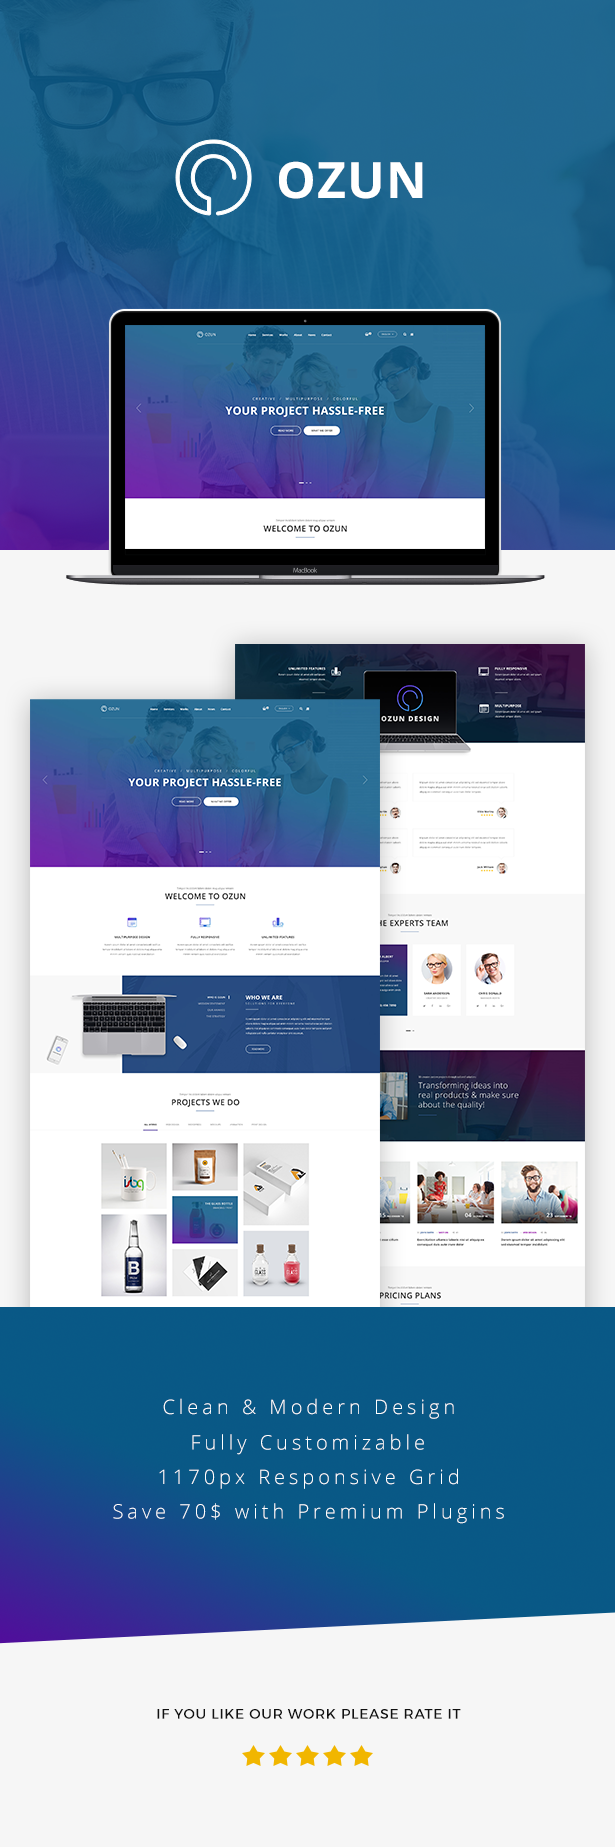 OZUN - Creative and Multipurpose WP Theme - 6  Download OZUN – Creative and Multipurpose WP Theme nulled 1